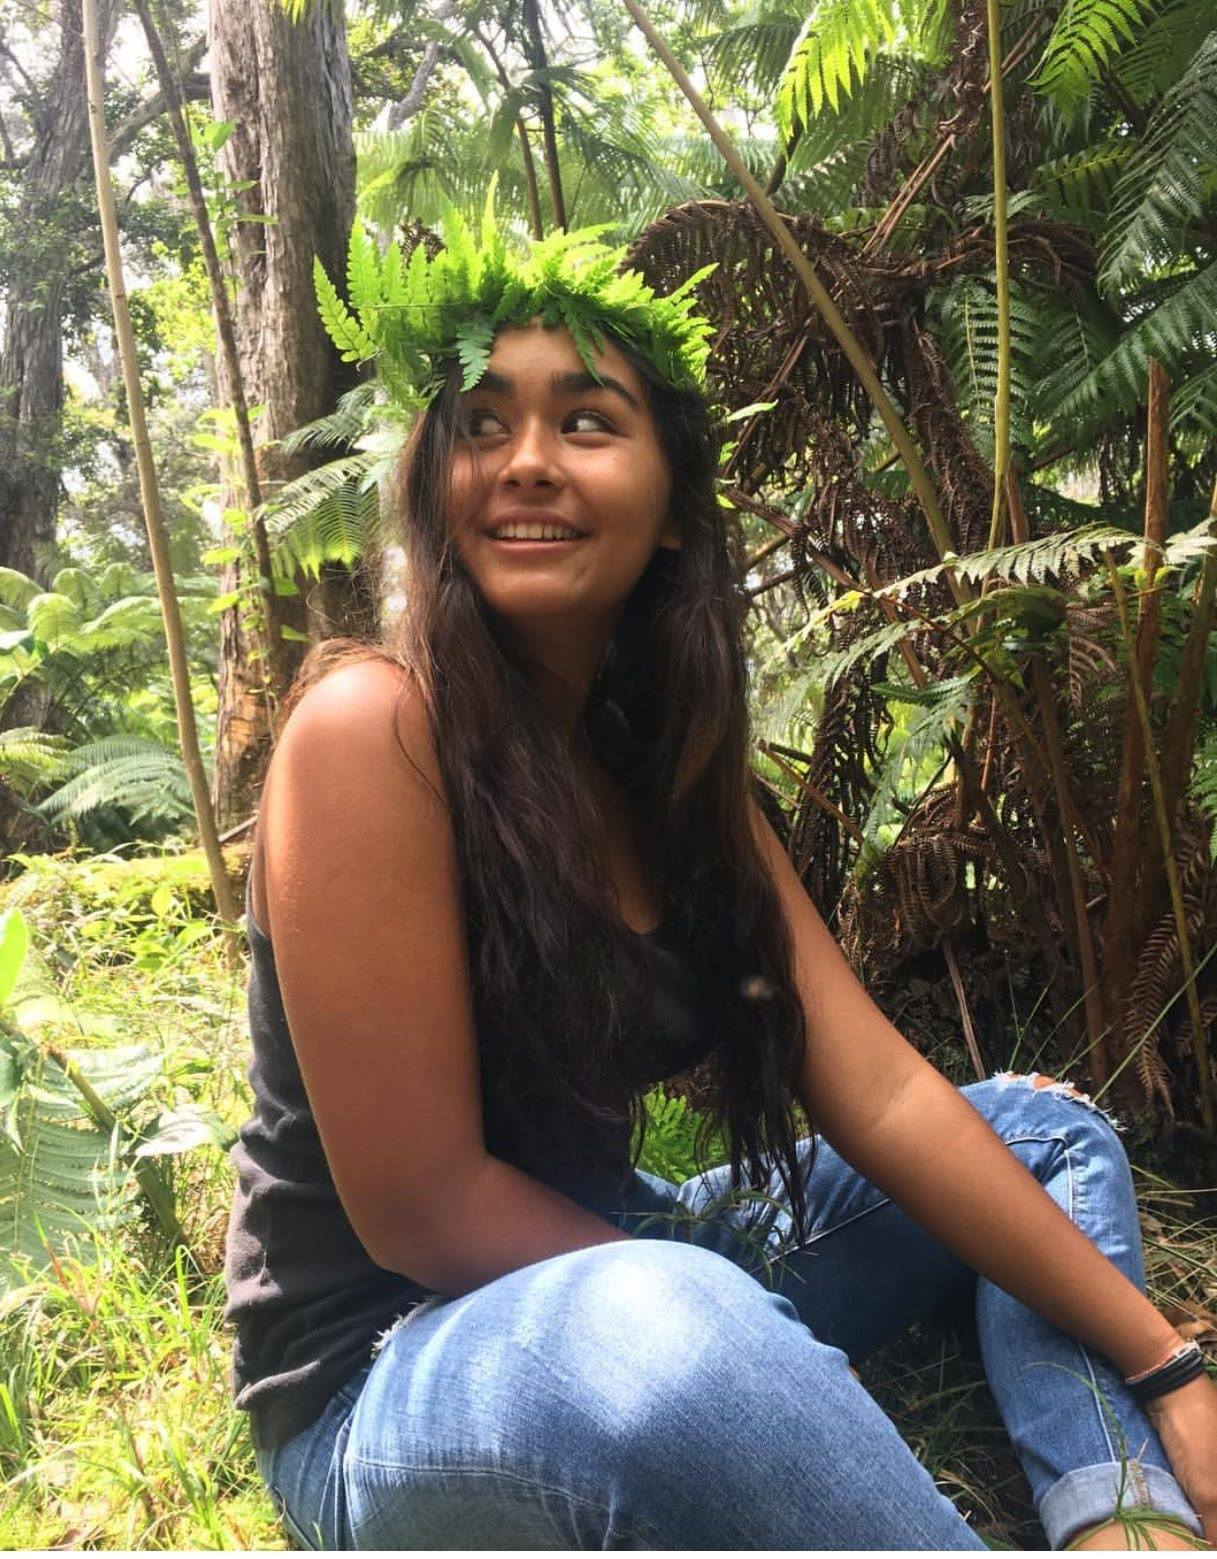 2018 nigani Inaugural Scholarship Recipient, Hali'a Locke-Nacimento  feeling comfortable in Environmental Indigenous science.